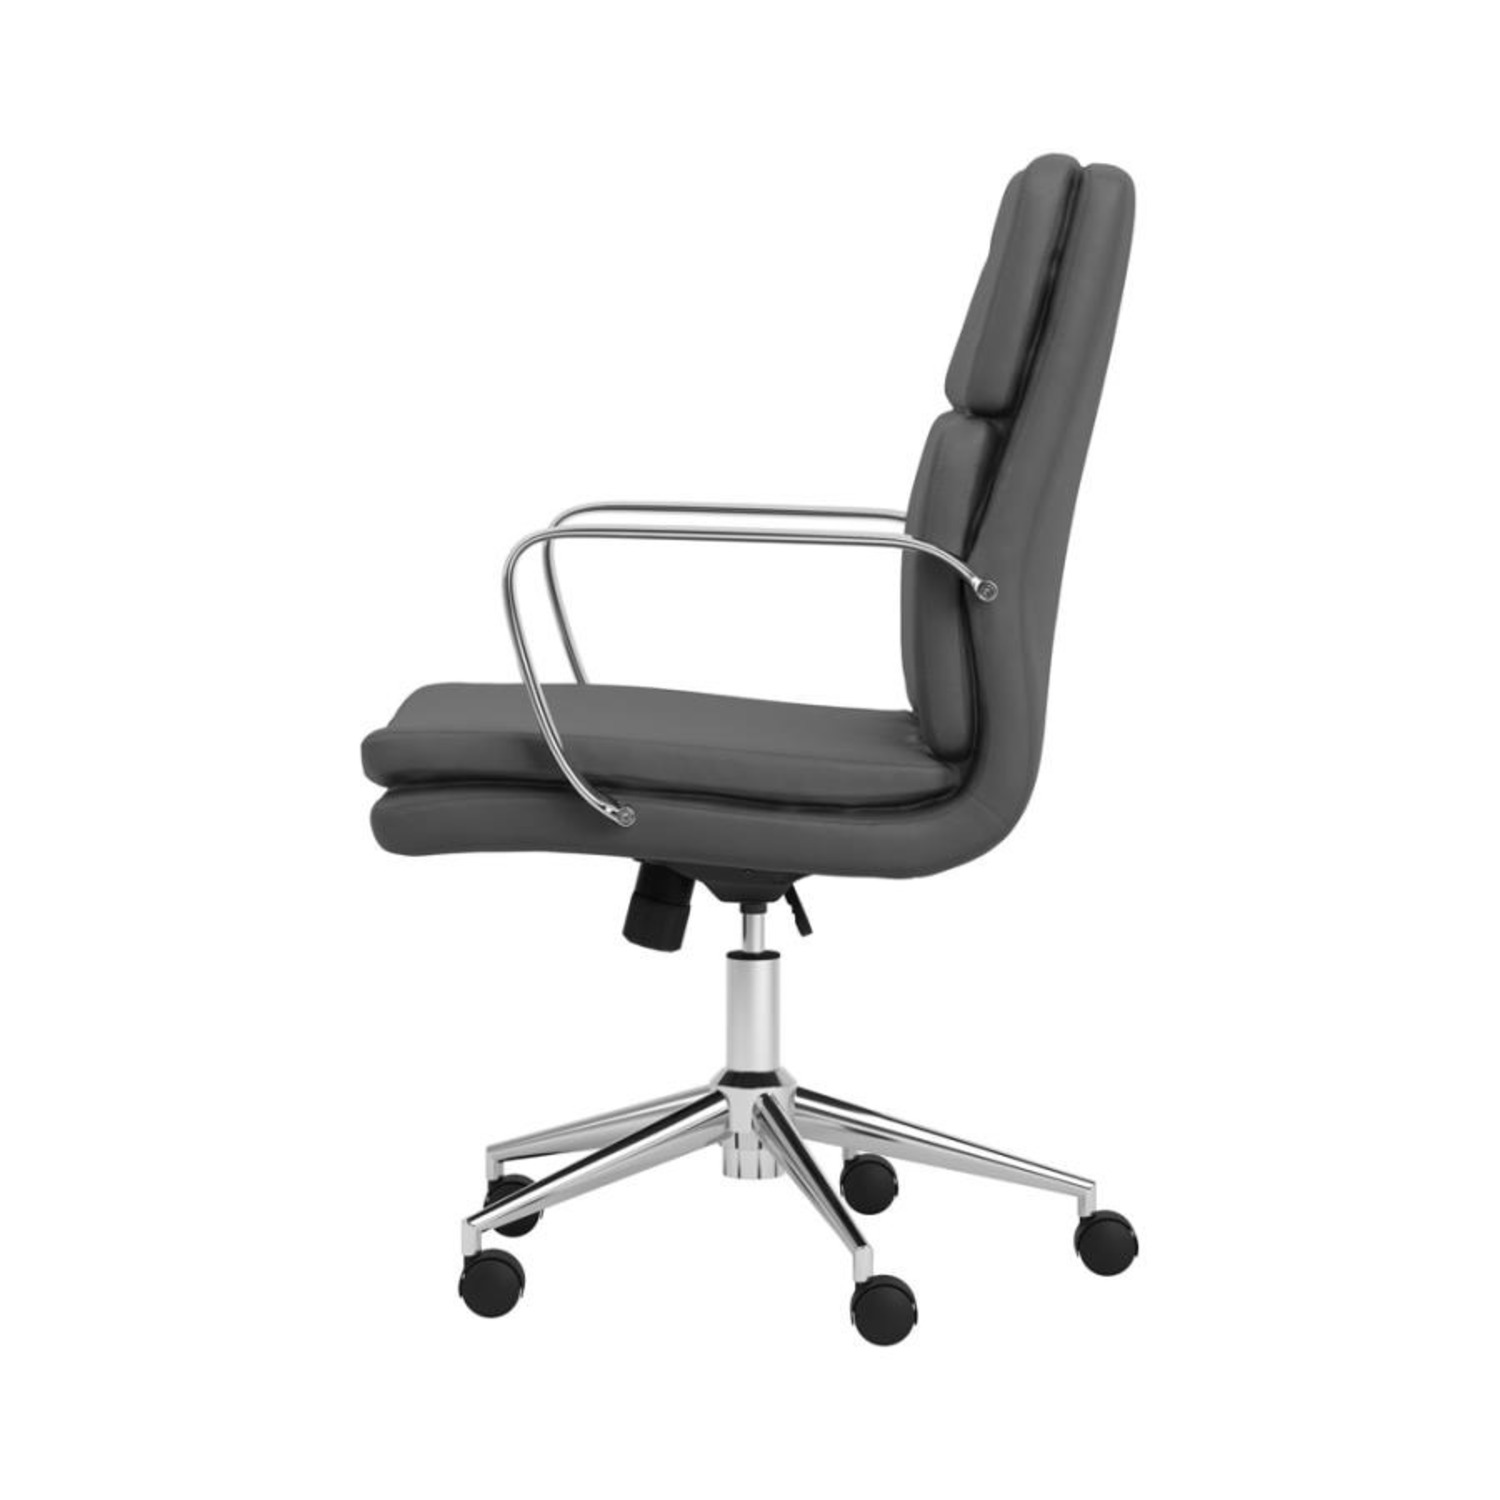 Office Chair In Grey Leatherette & Chrome Finish - image-2